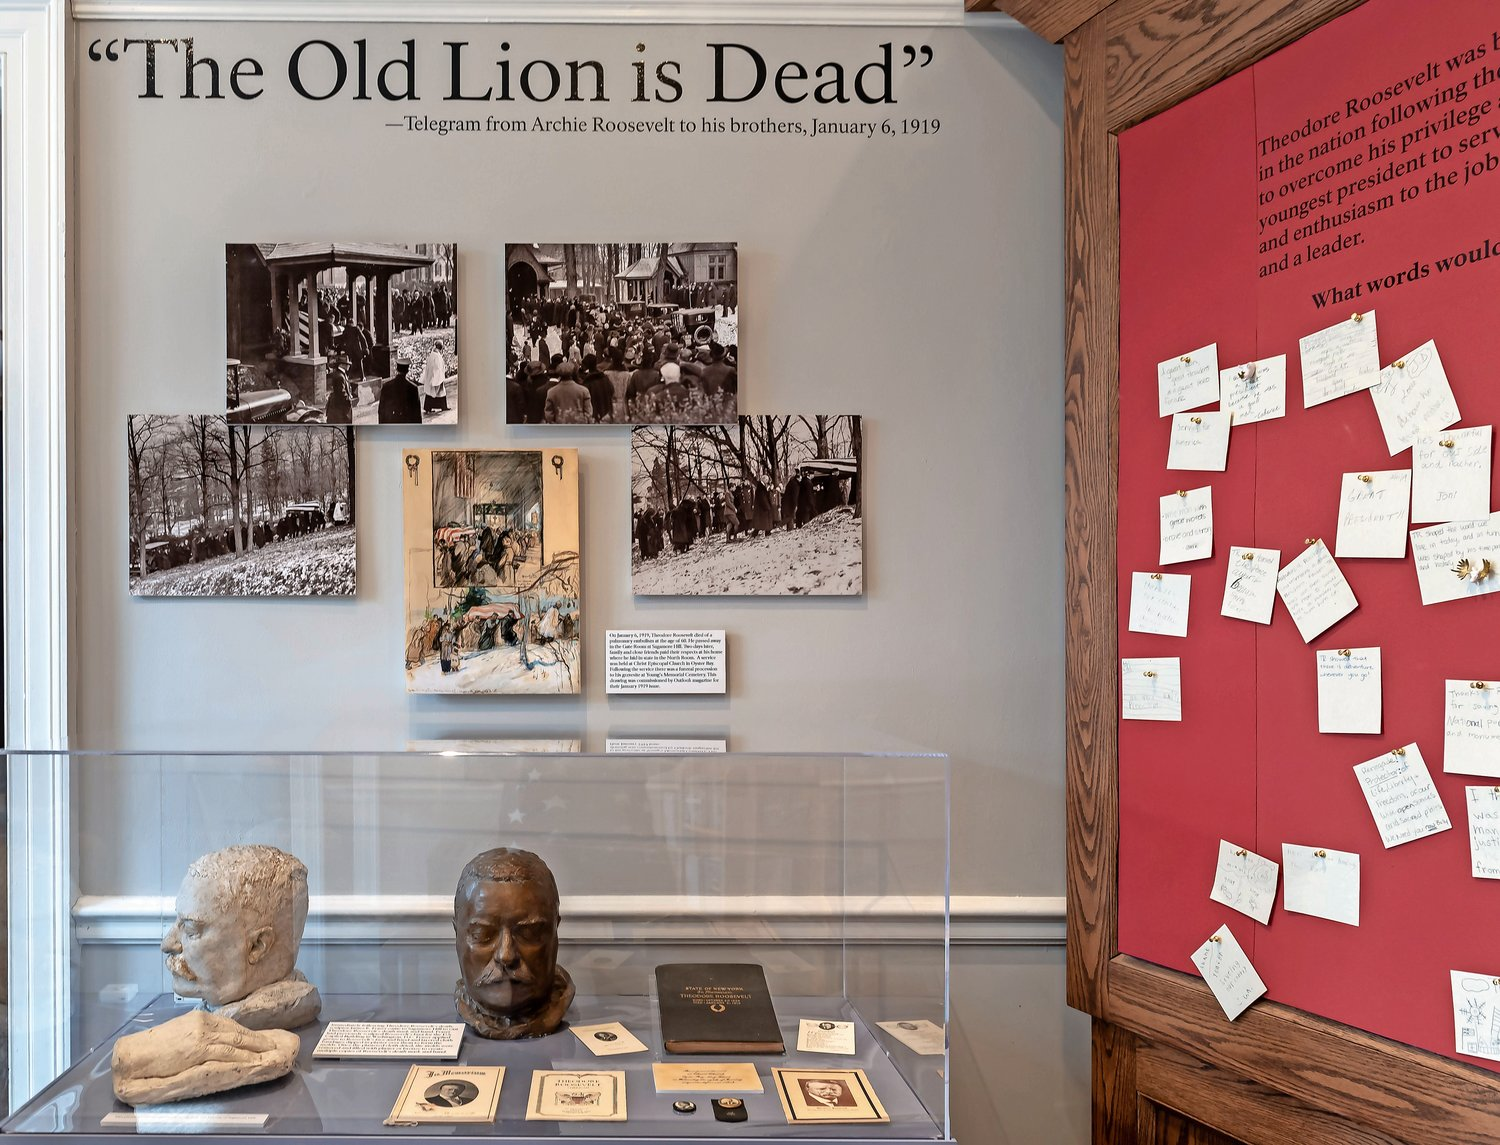 The exhibit includes activities to engage children, including an opportunity to share what they think of the former president and display it on a board.